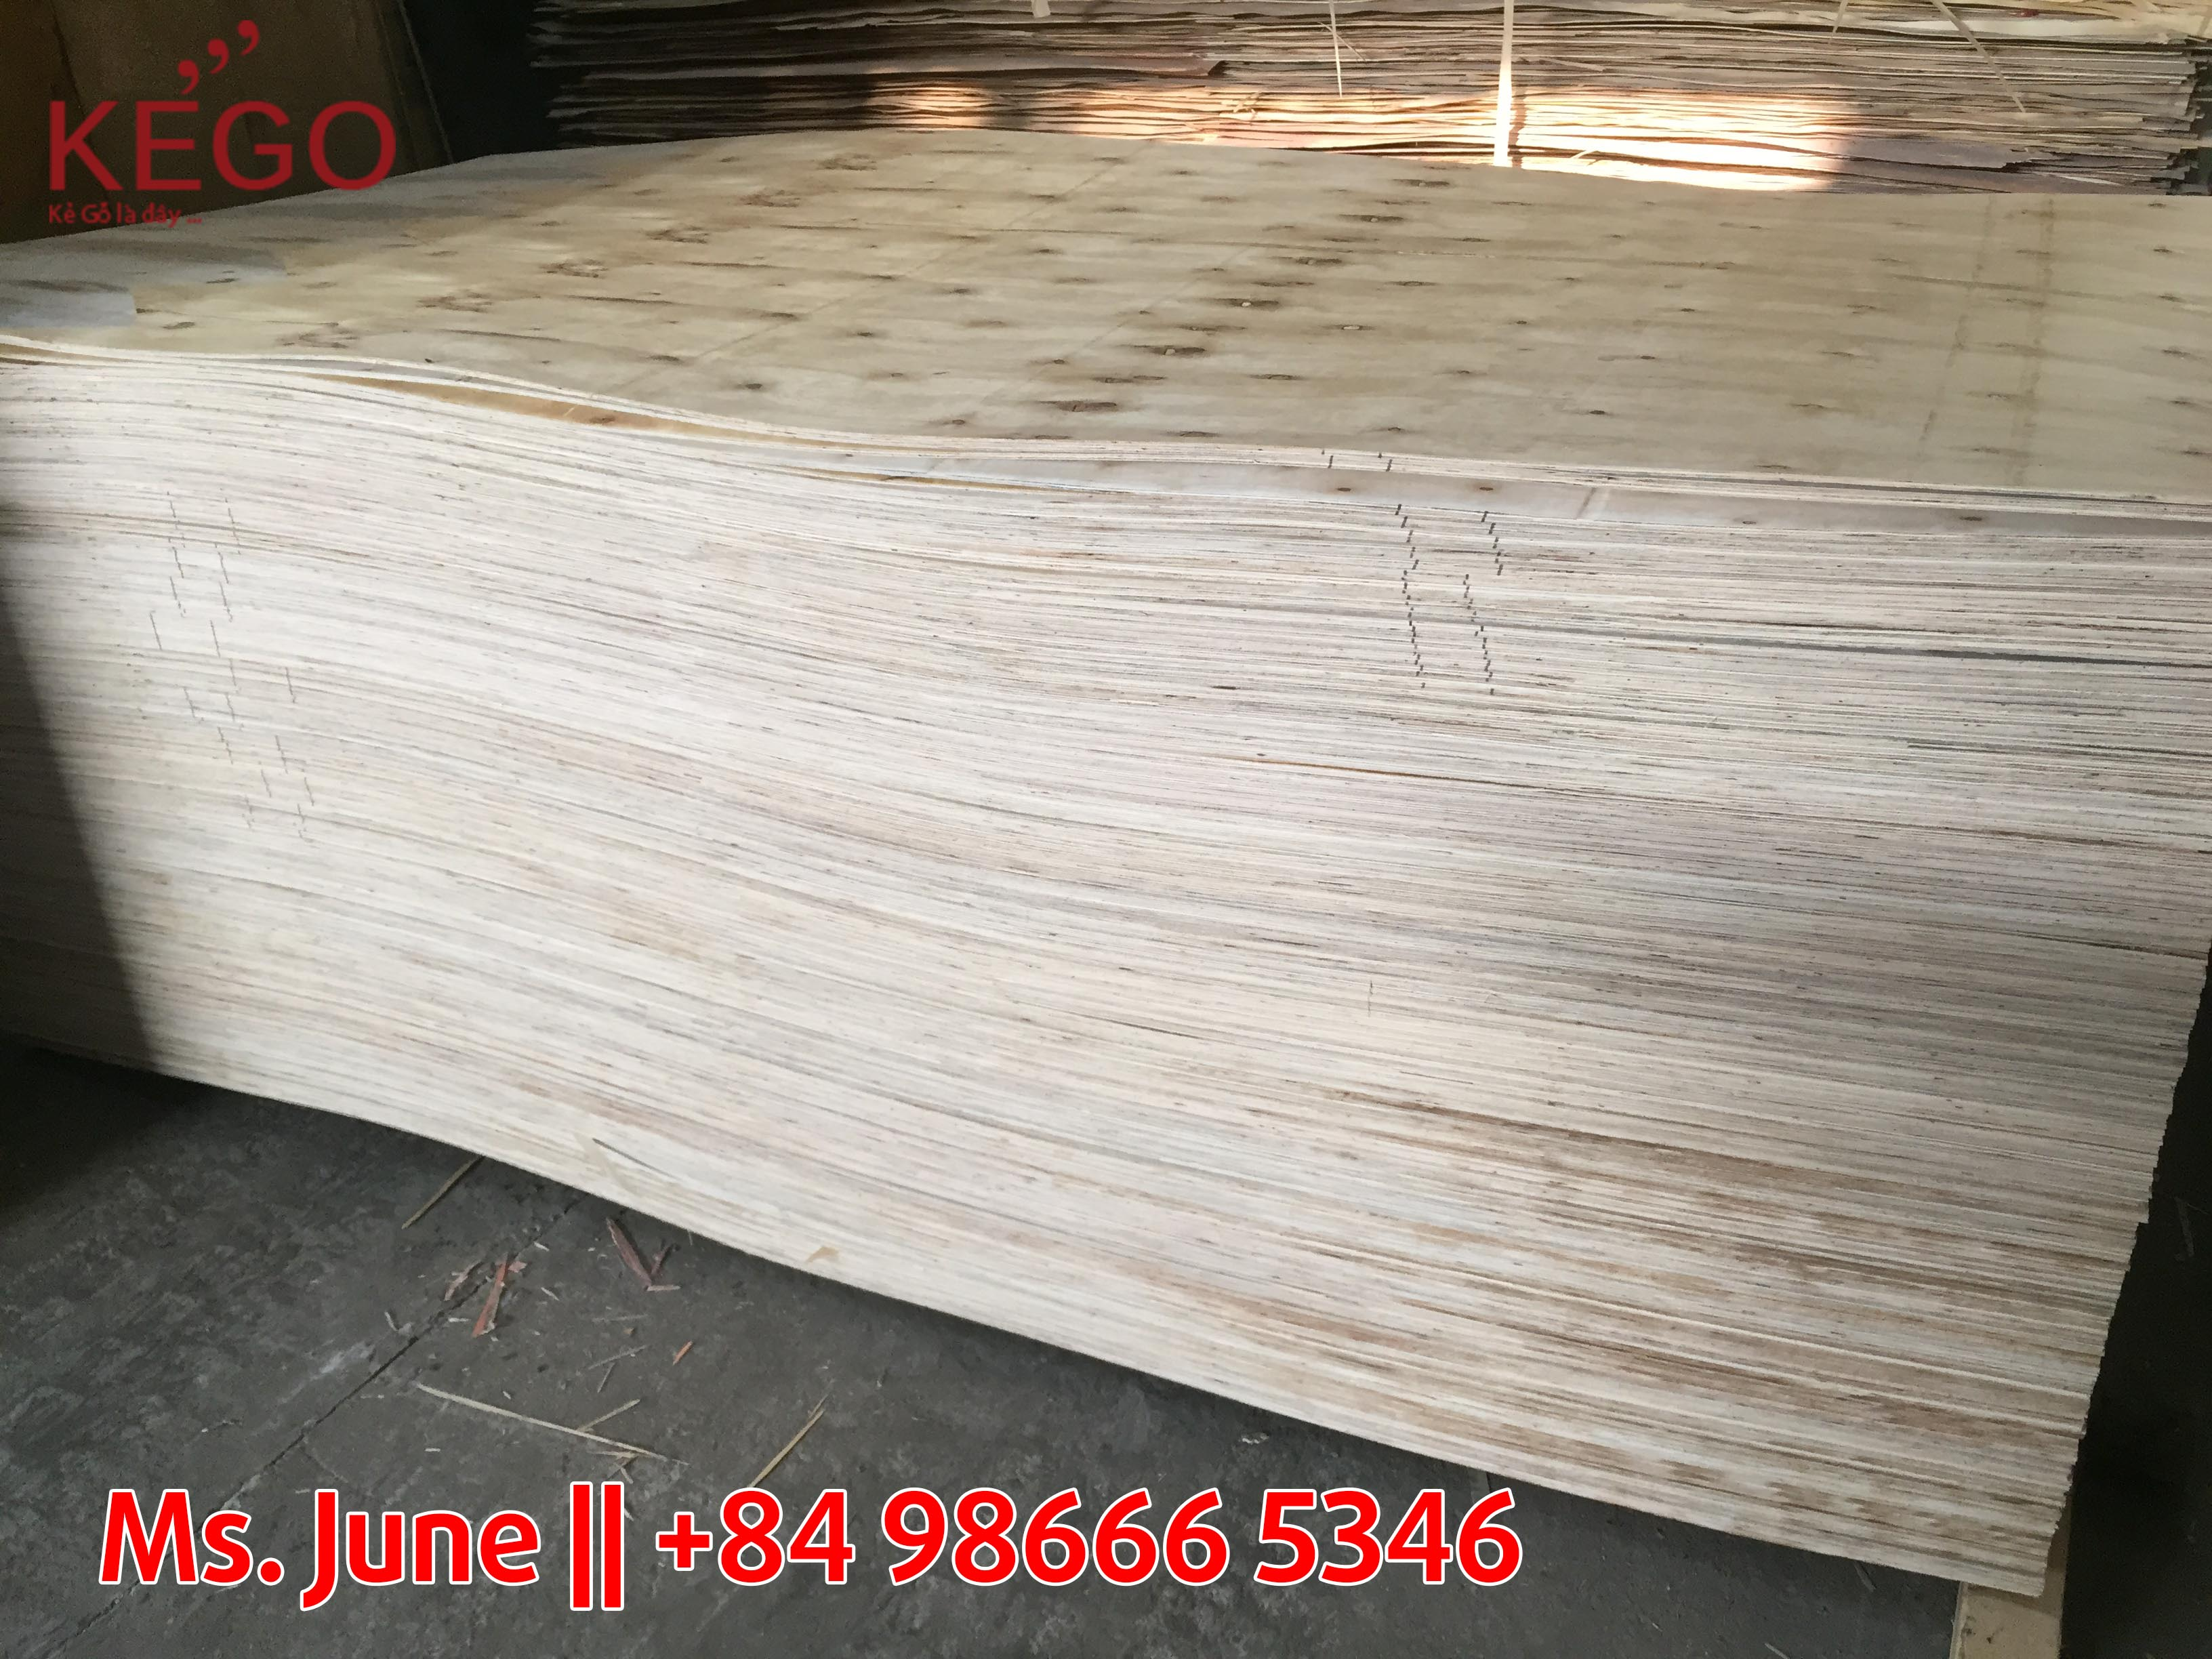 BEST QUALITY PACKING PLYWOOD FROM VIETNAM (8.5 X 1220 X 2440)